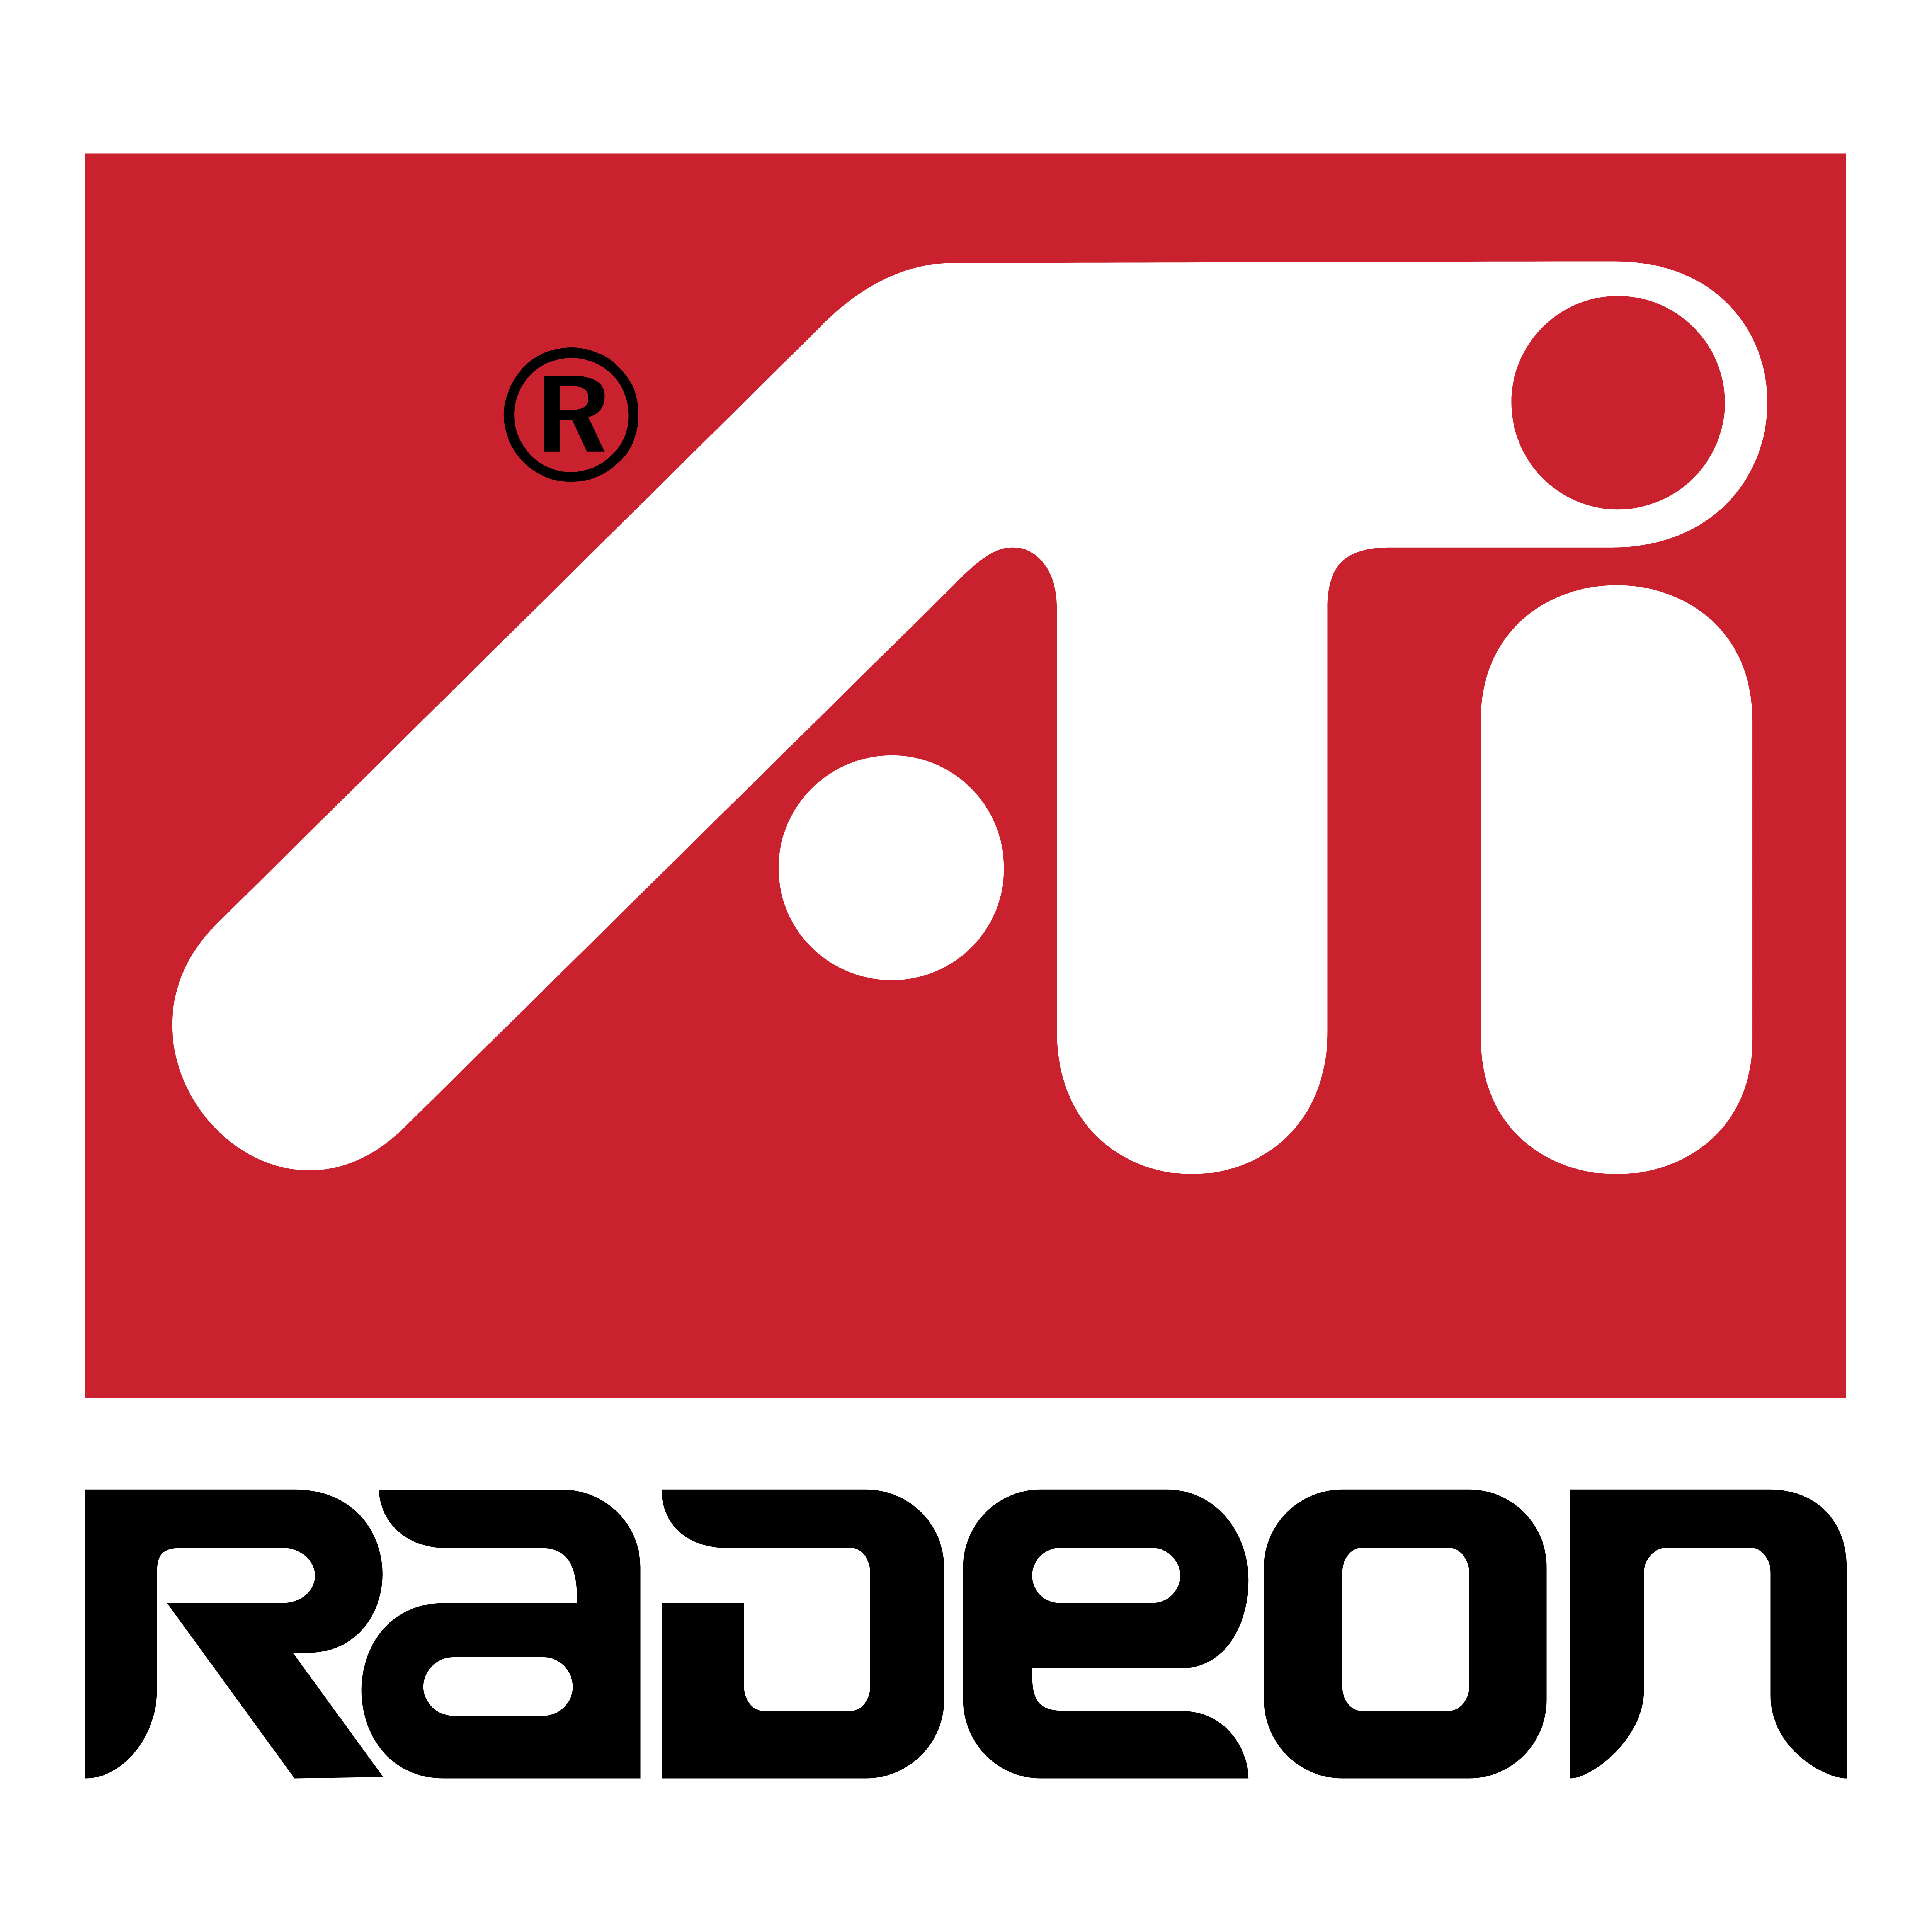 ati mobility radeon logos download. Black Bedroom Furniture Sets. Home Design Ideas